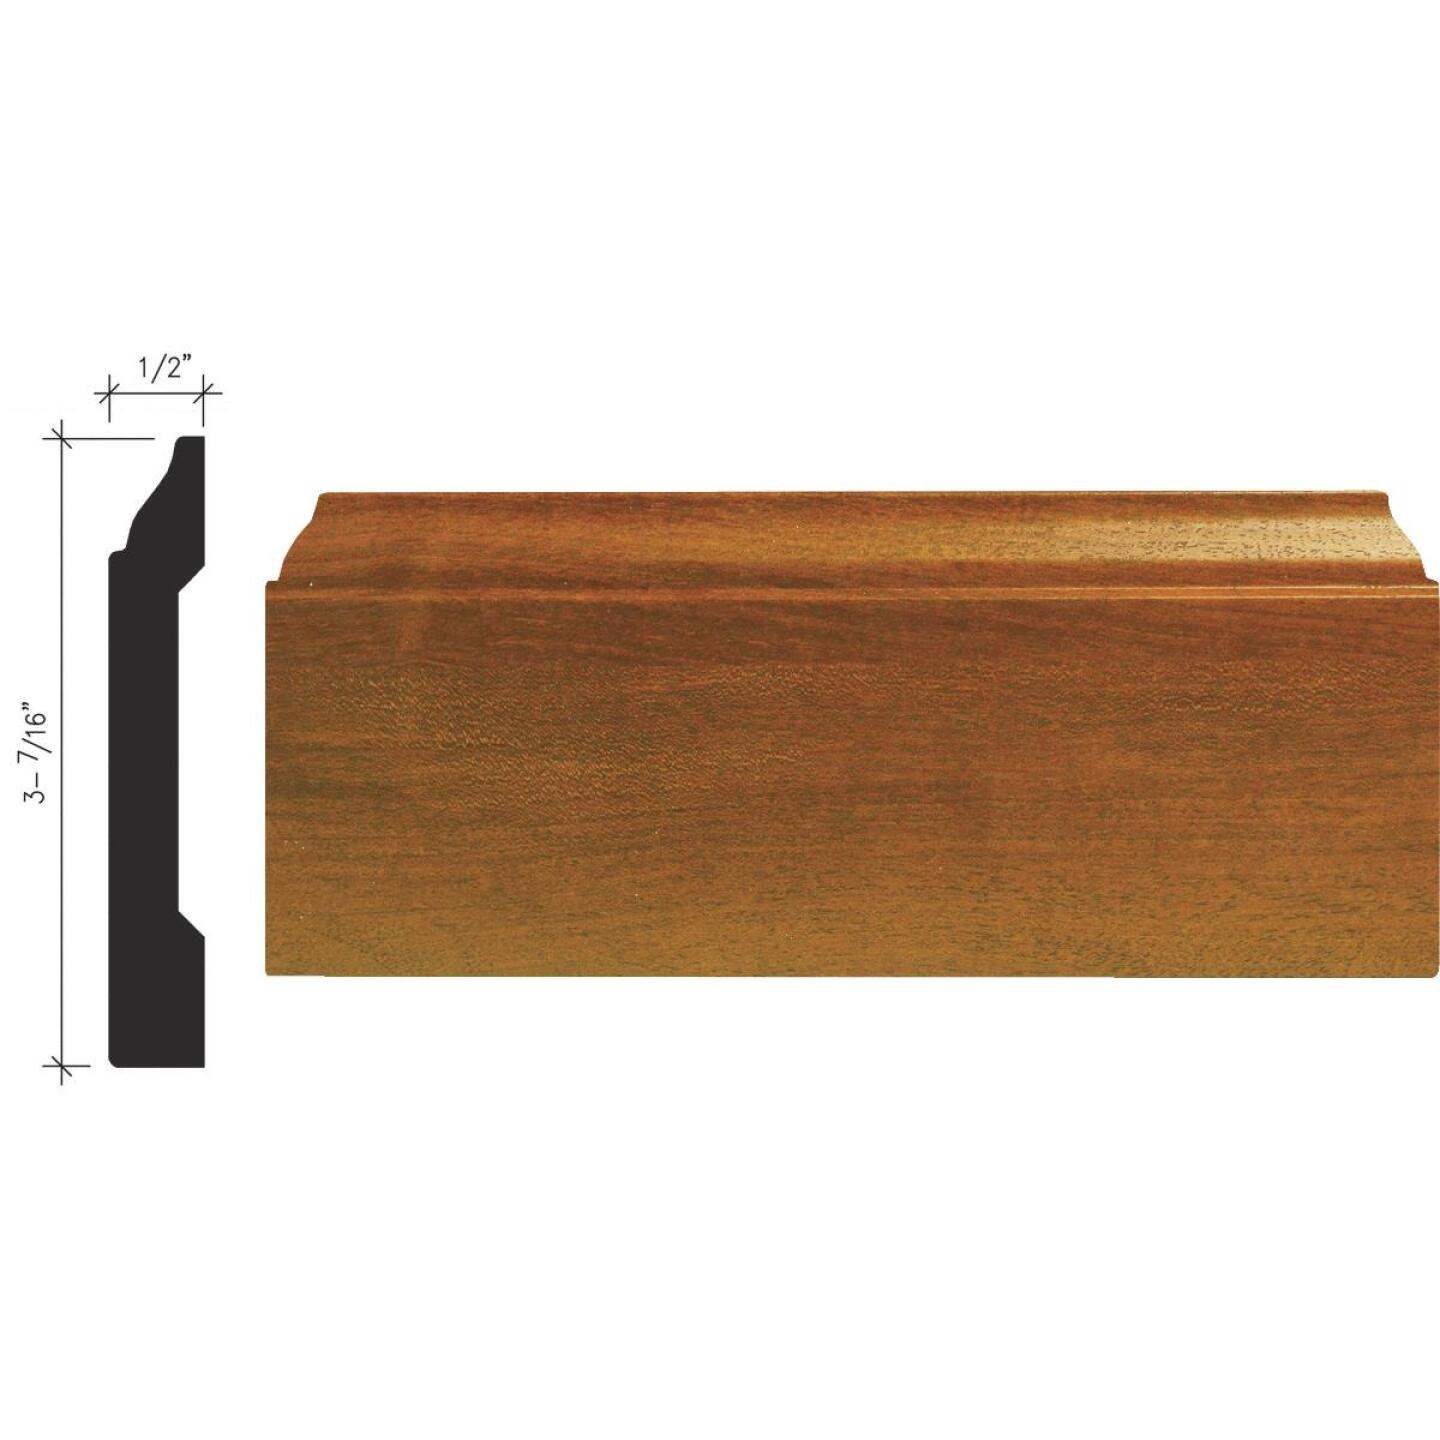 Inteplast Building Products 1/2 In. W. x 3-7/16 In. H. x 8 Ft. L. Independence Cherry Polystyrene Colonial Base Molding Image 1